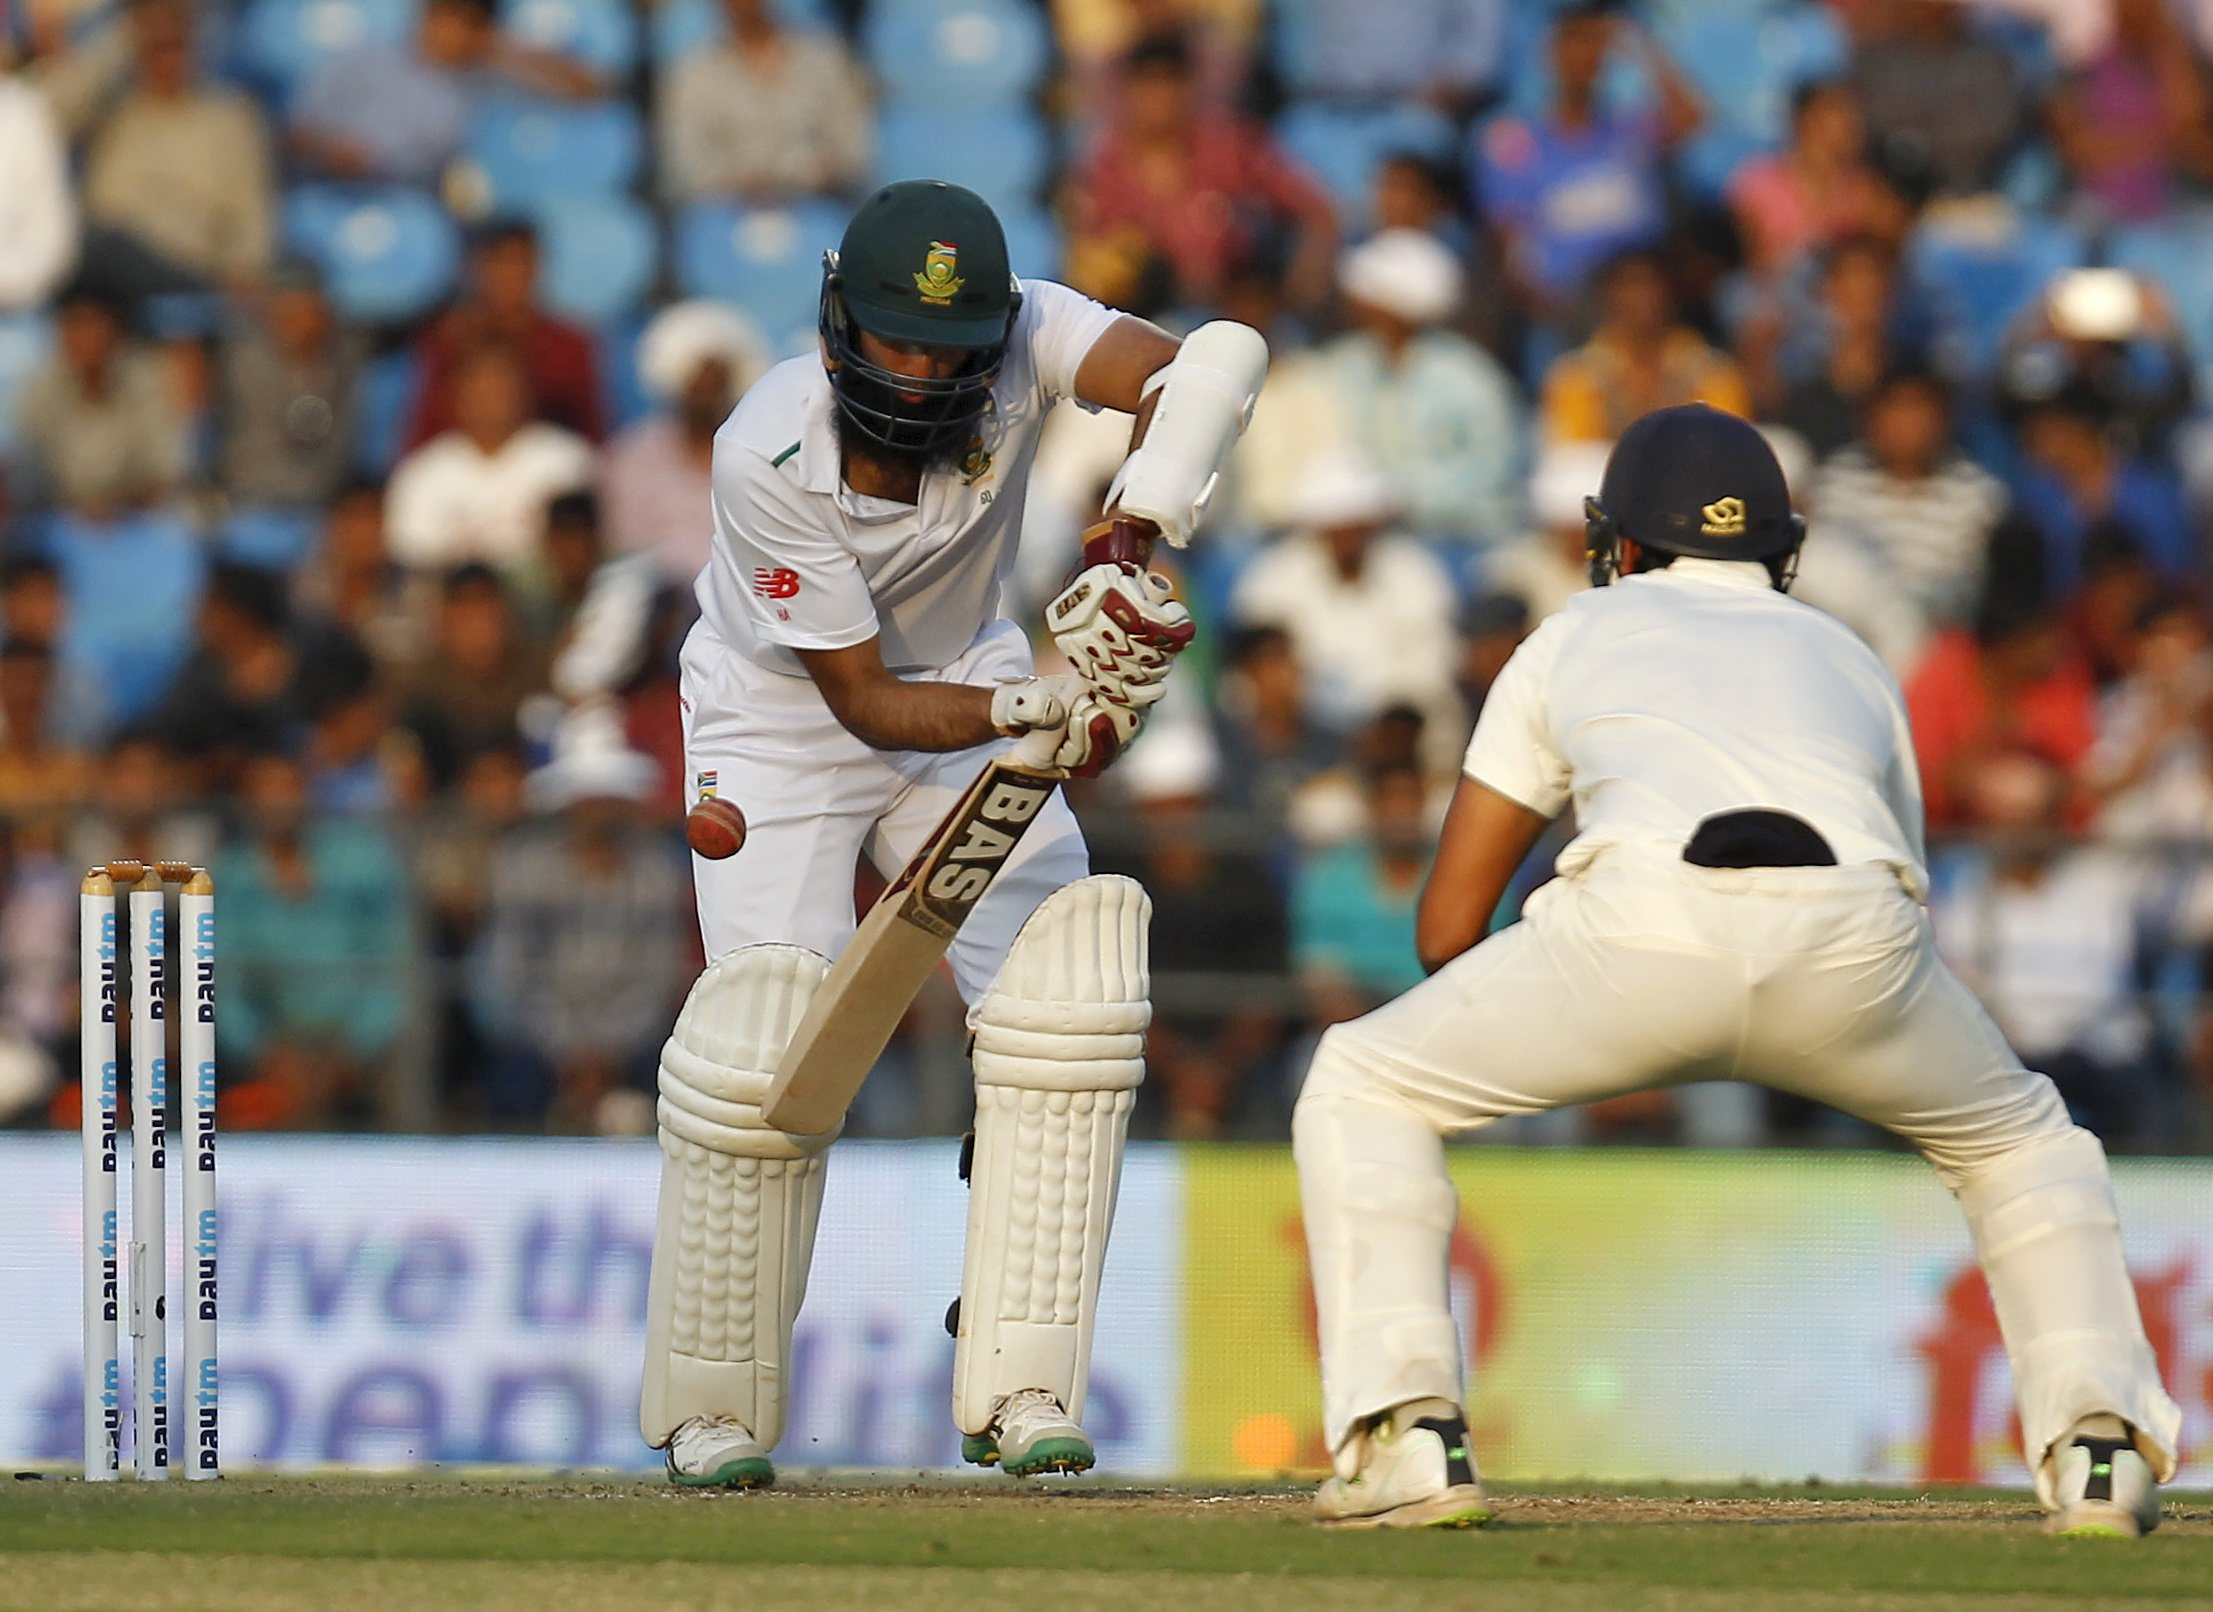 South Africa's captain Hashim Amla (left) plays a shot during the second day of their third test cricket match against India in Nagpur, India, November 26, 2015. Photo: Reuters